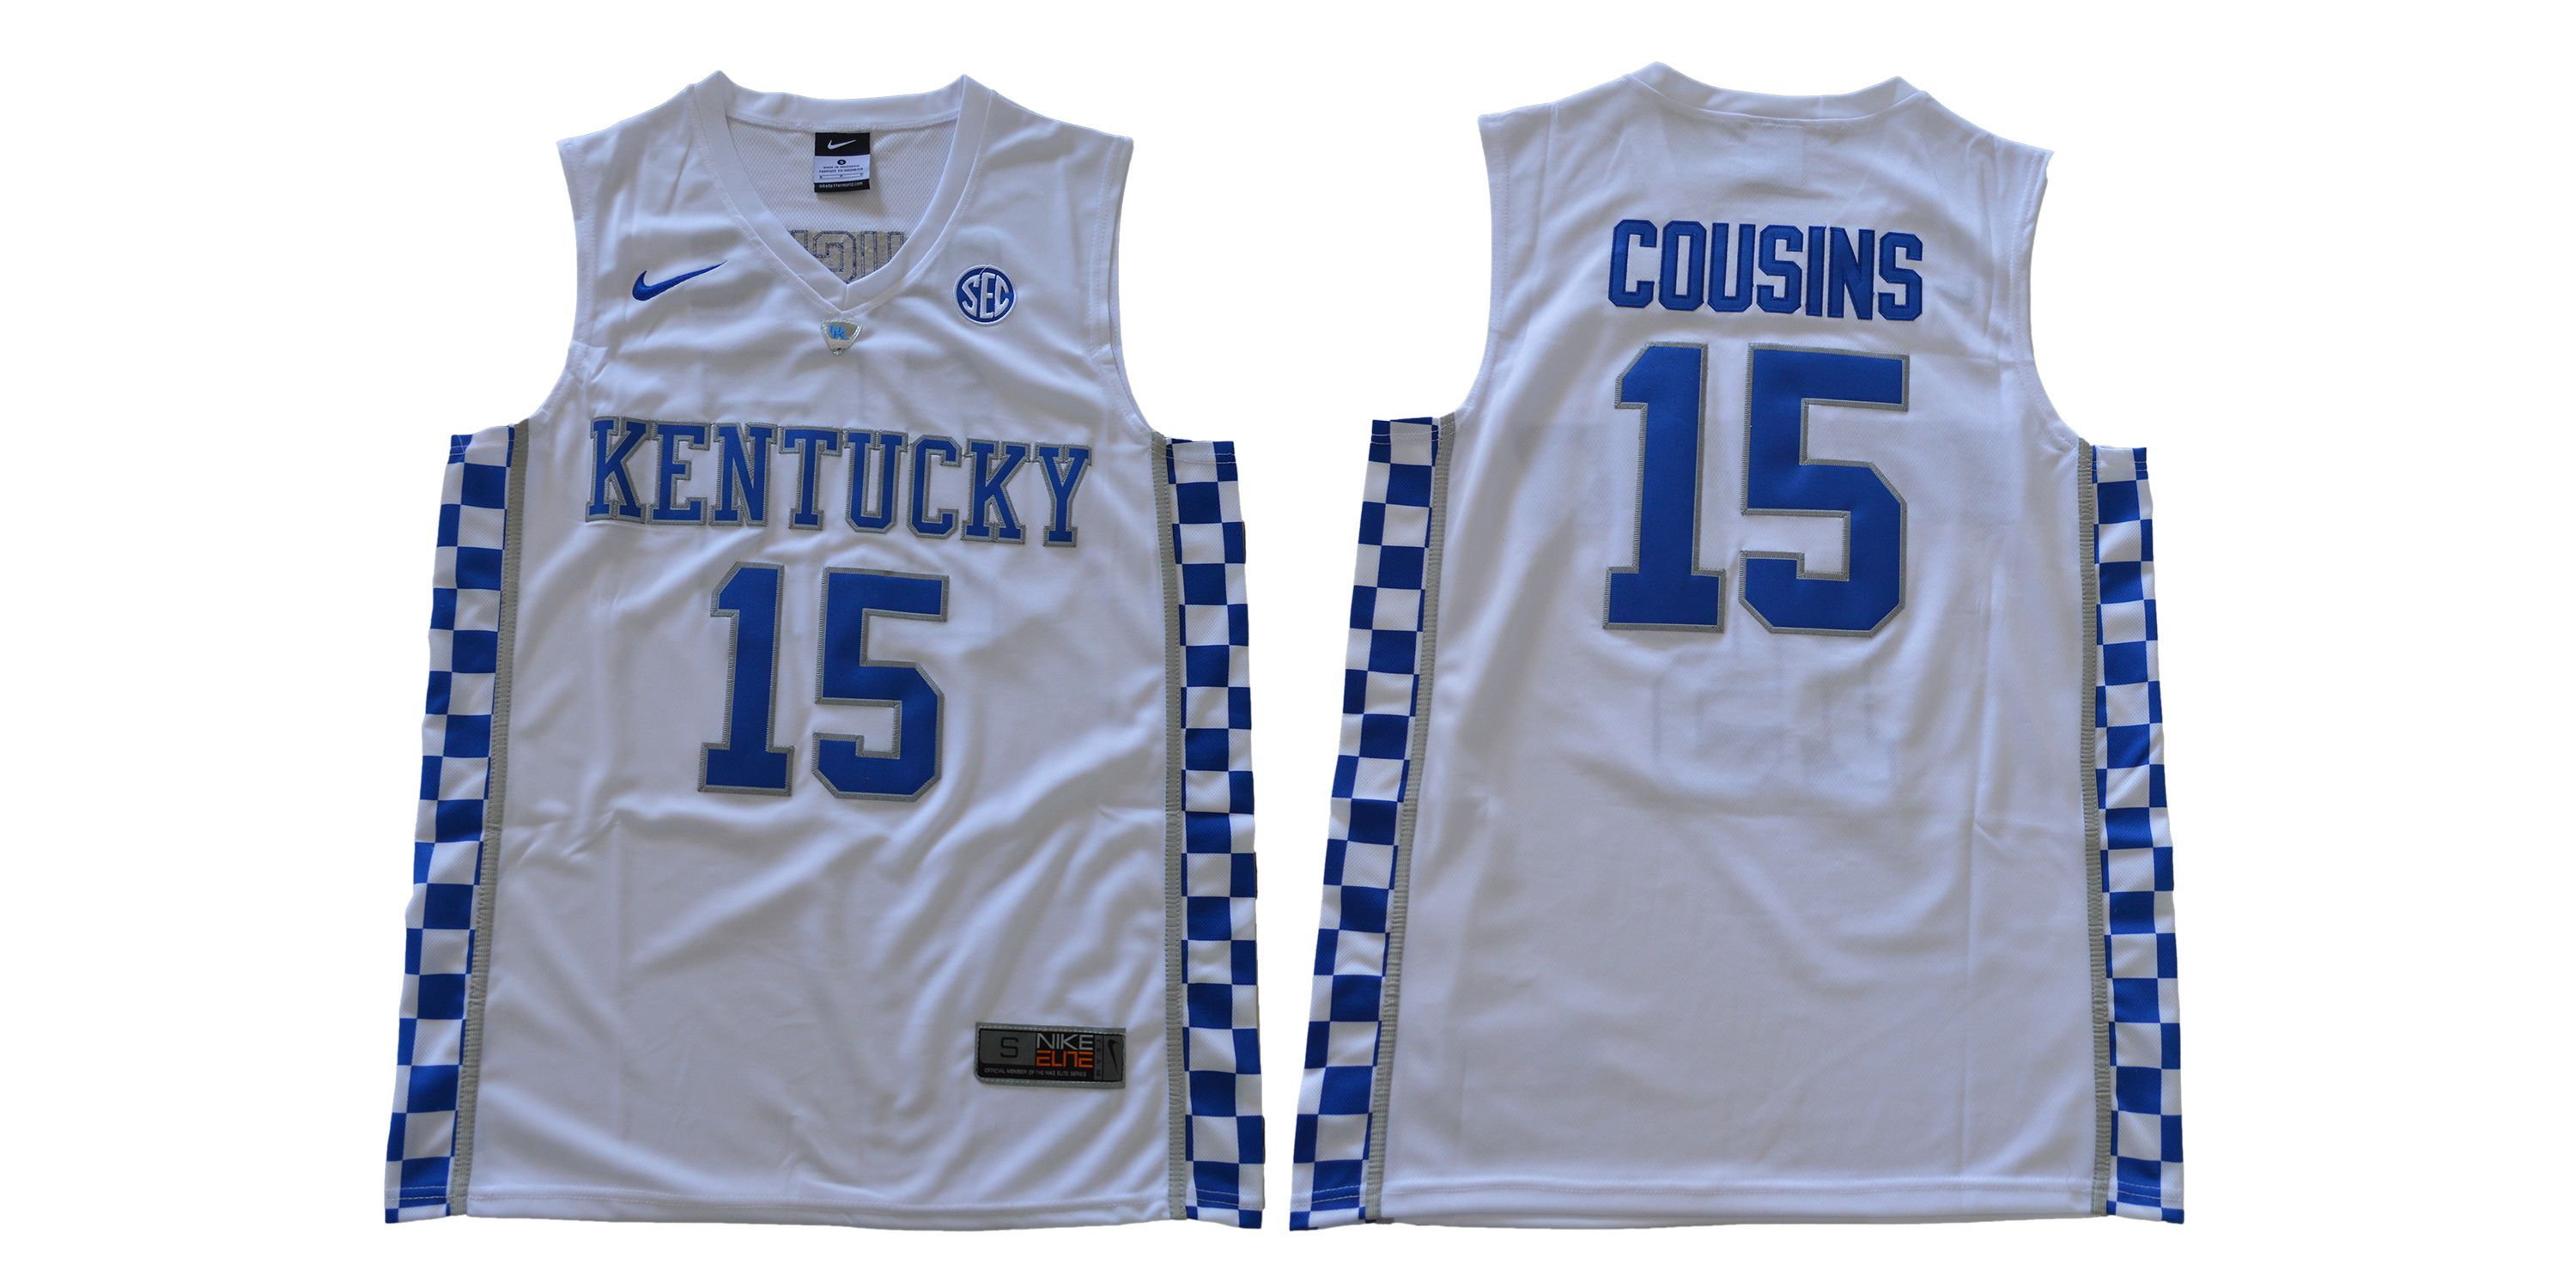 Men Kentucky Wildcats 15 Cousins White NBA NCAA Jerseys